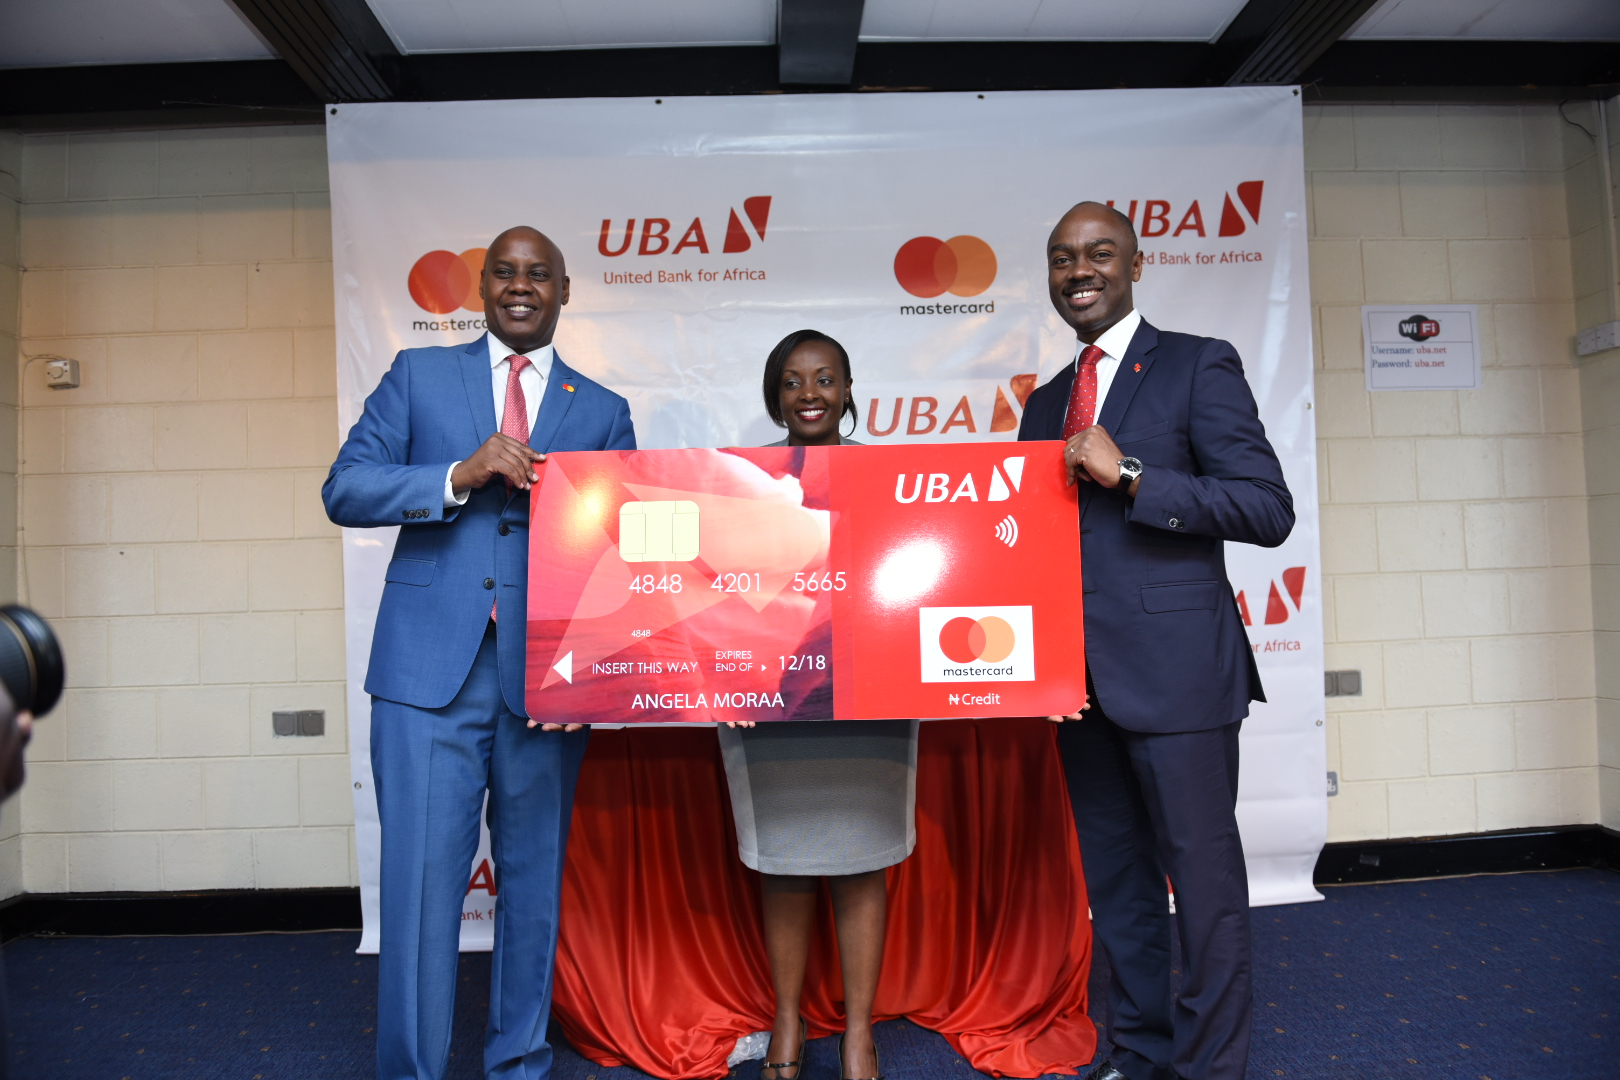 UBA partners with Mastercard to displace cash with electronic payment